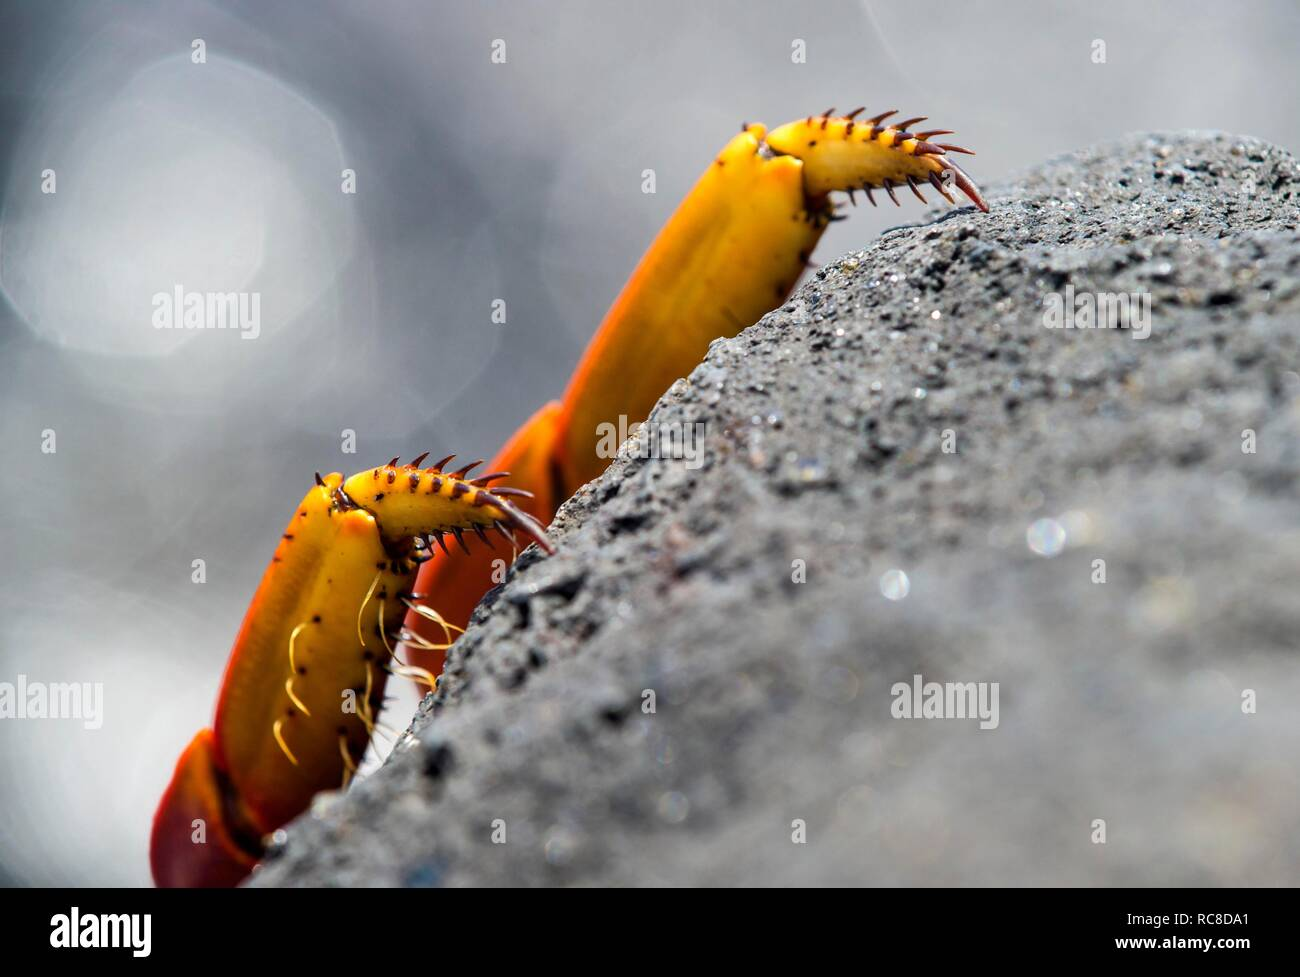 Feet of Red rock crab (Grapsus grapsus) cling to volcanic rock, family of marsh crabs (Grapsidae), island Floreana - Stock Image